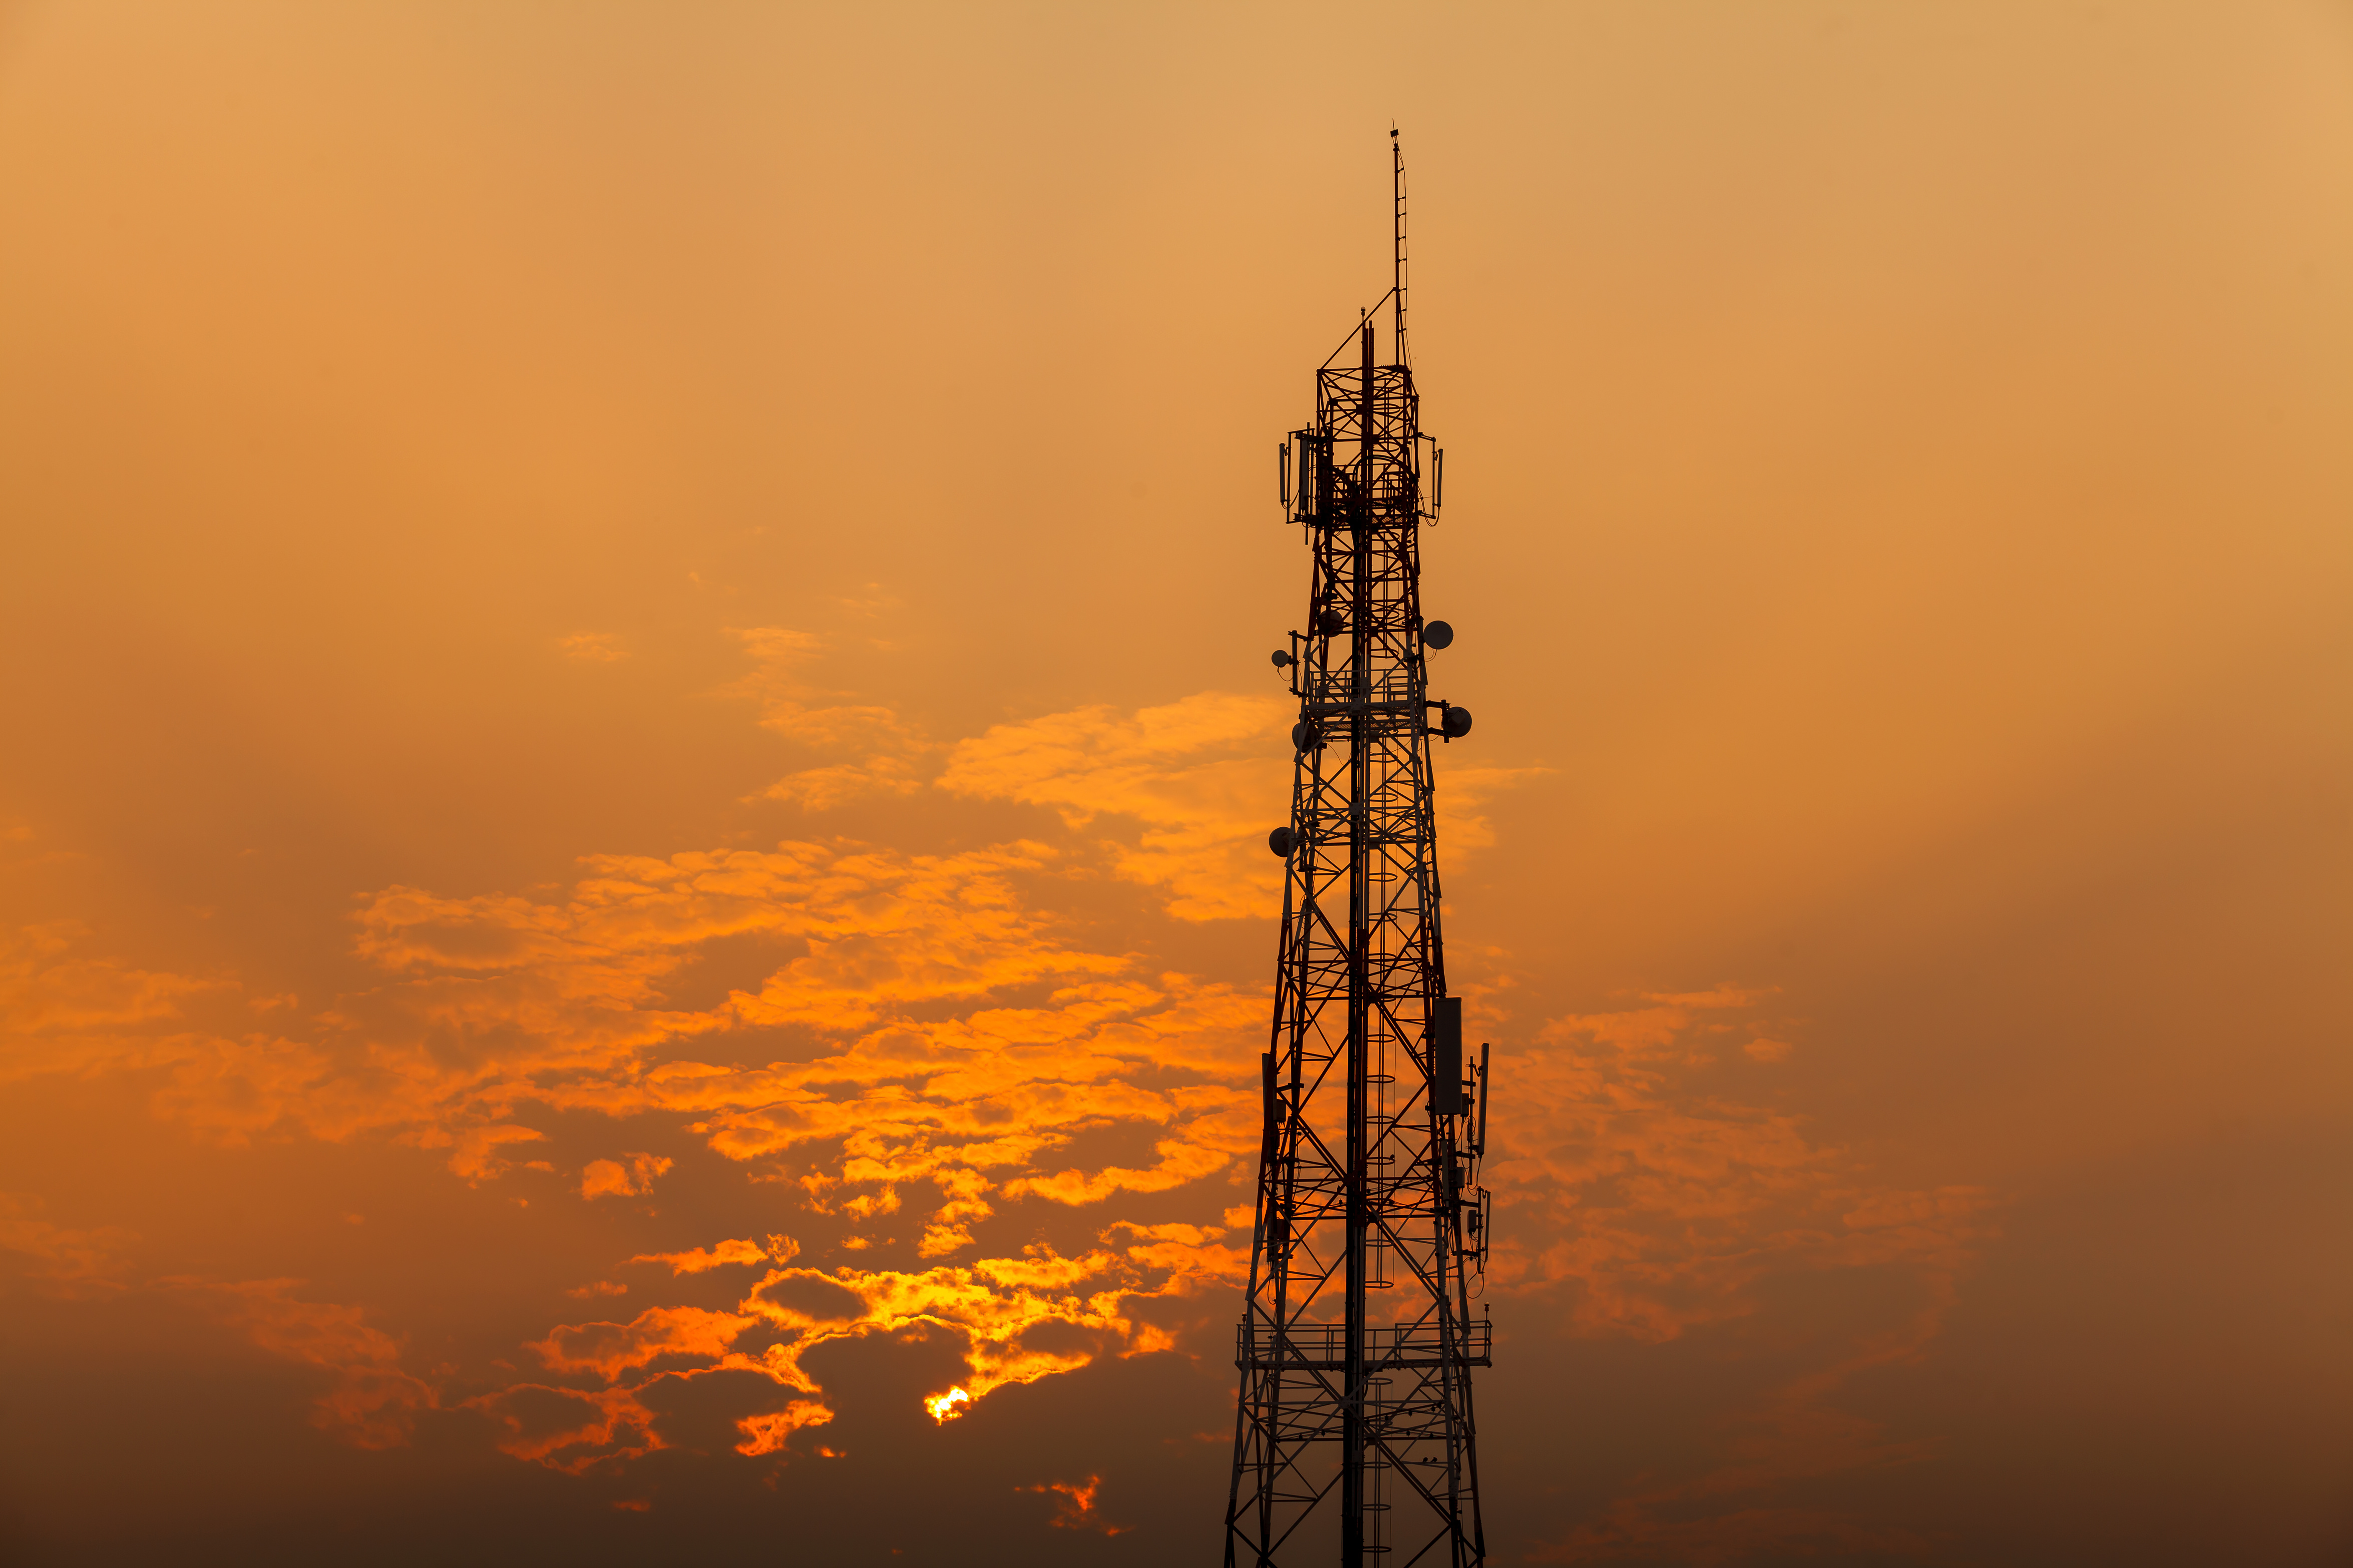 Communication tower during sunset